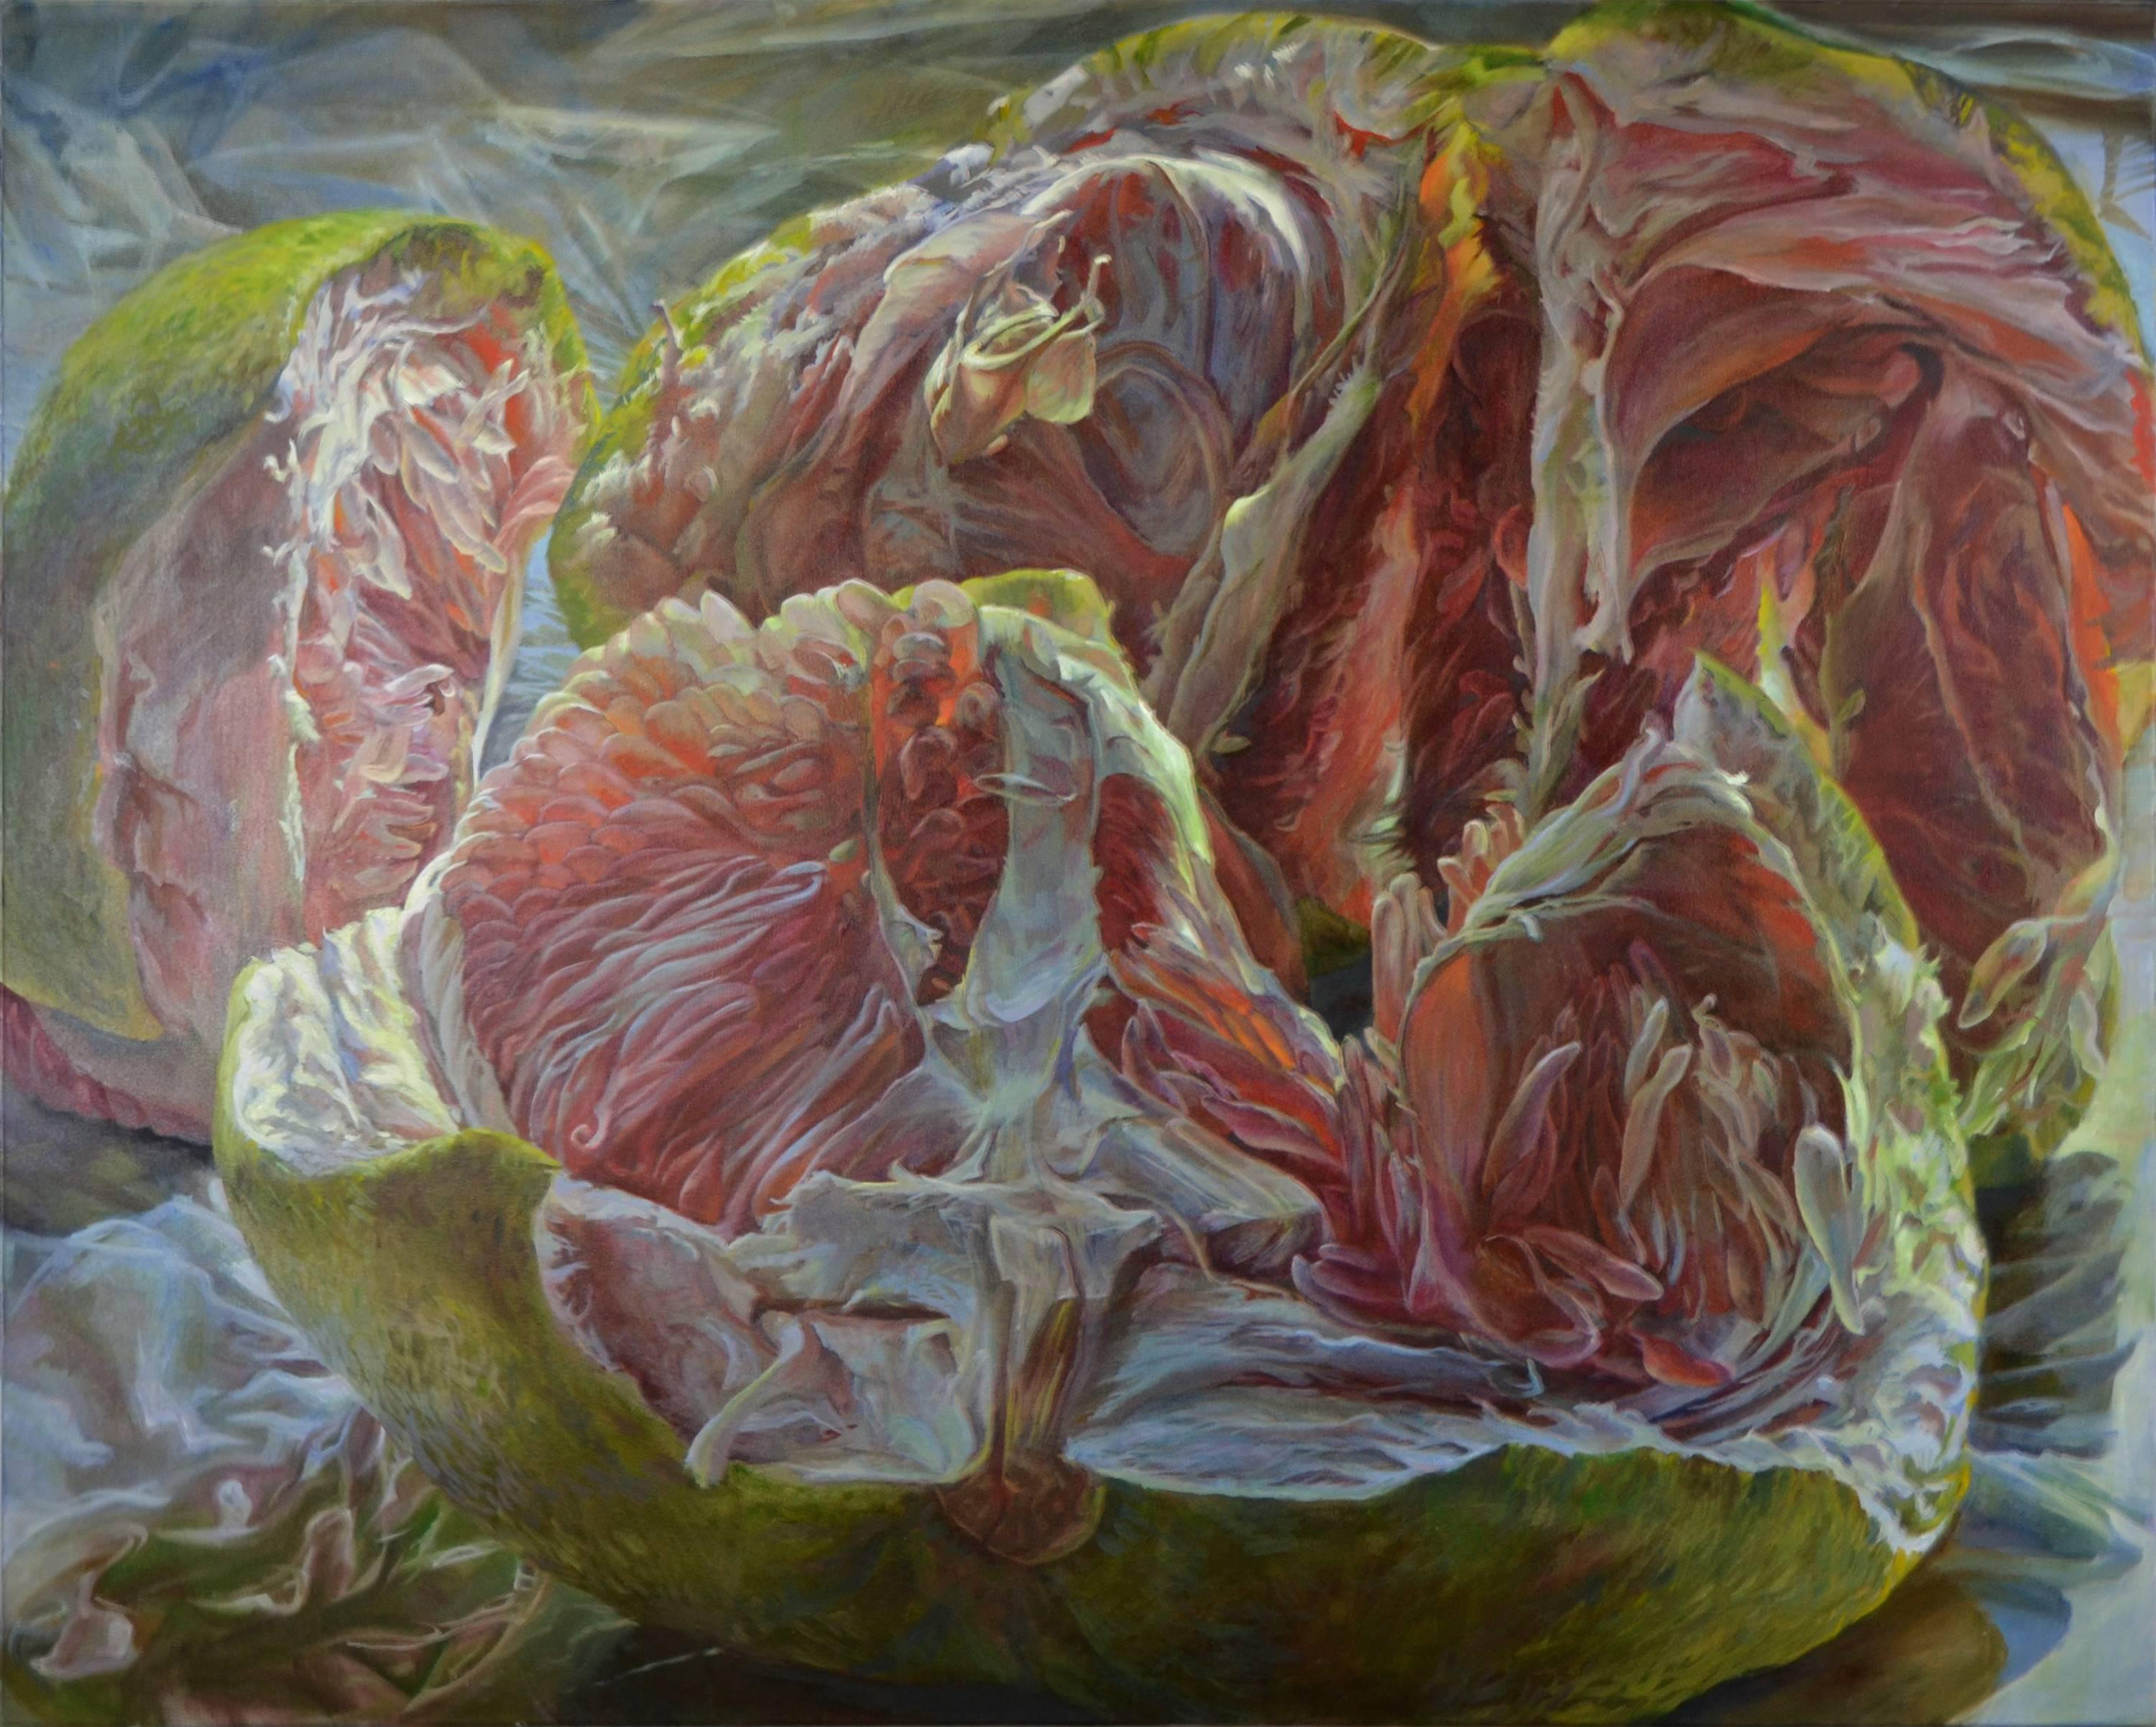 Plato's Cave, Large Still Life Oil Painting of Green and Pink Pomelo Fruit